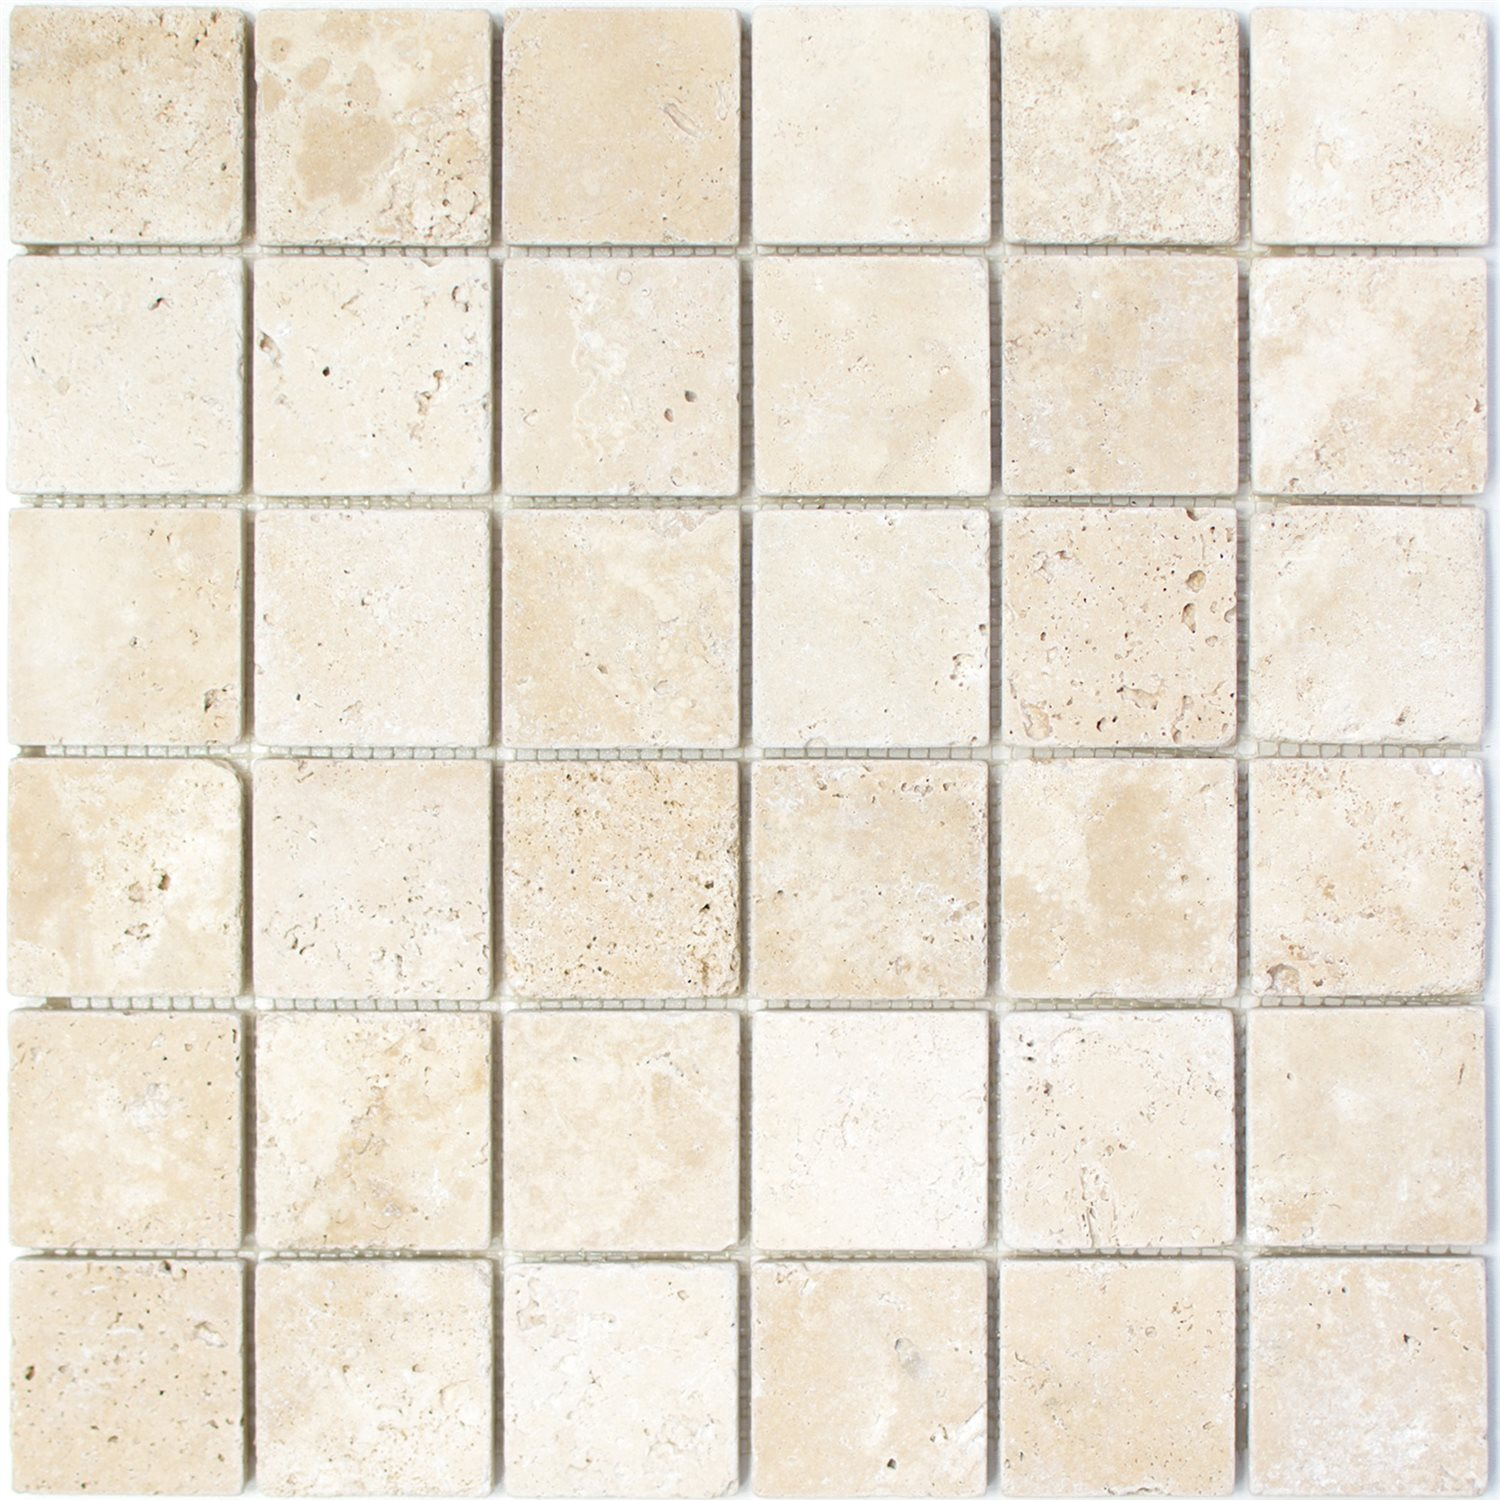 mosaique carrelage travertin barga beige 48